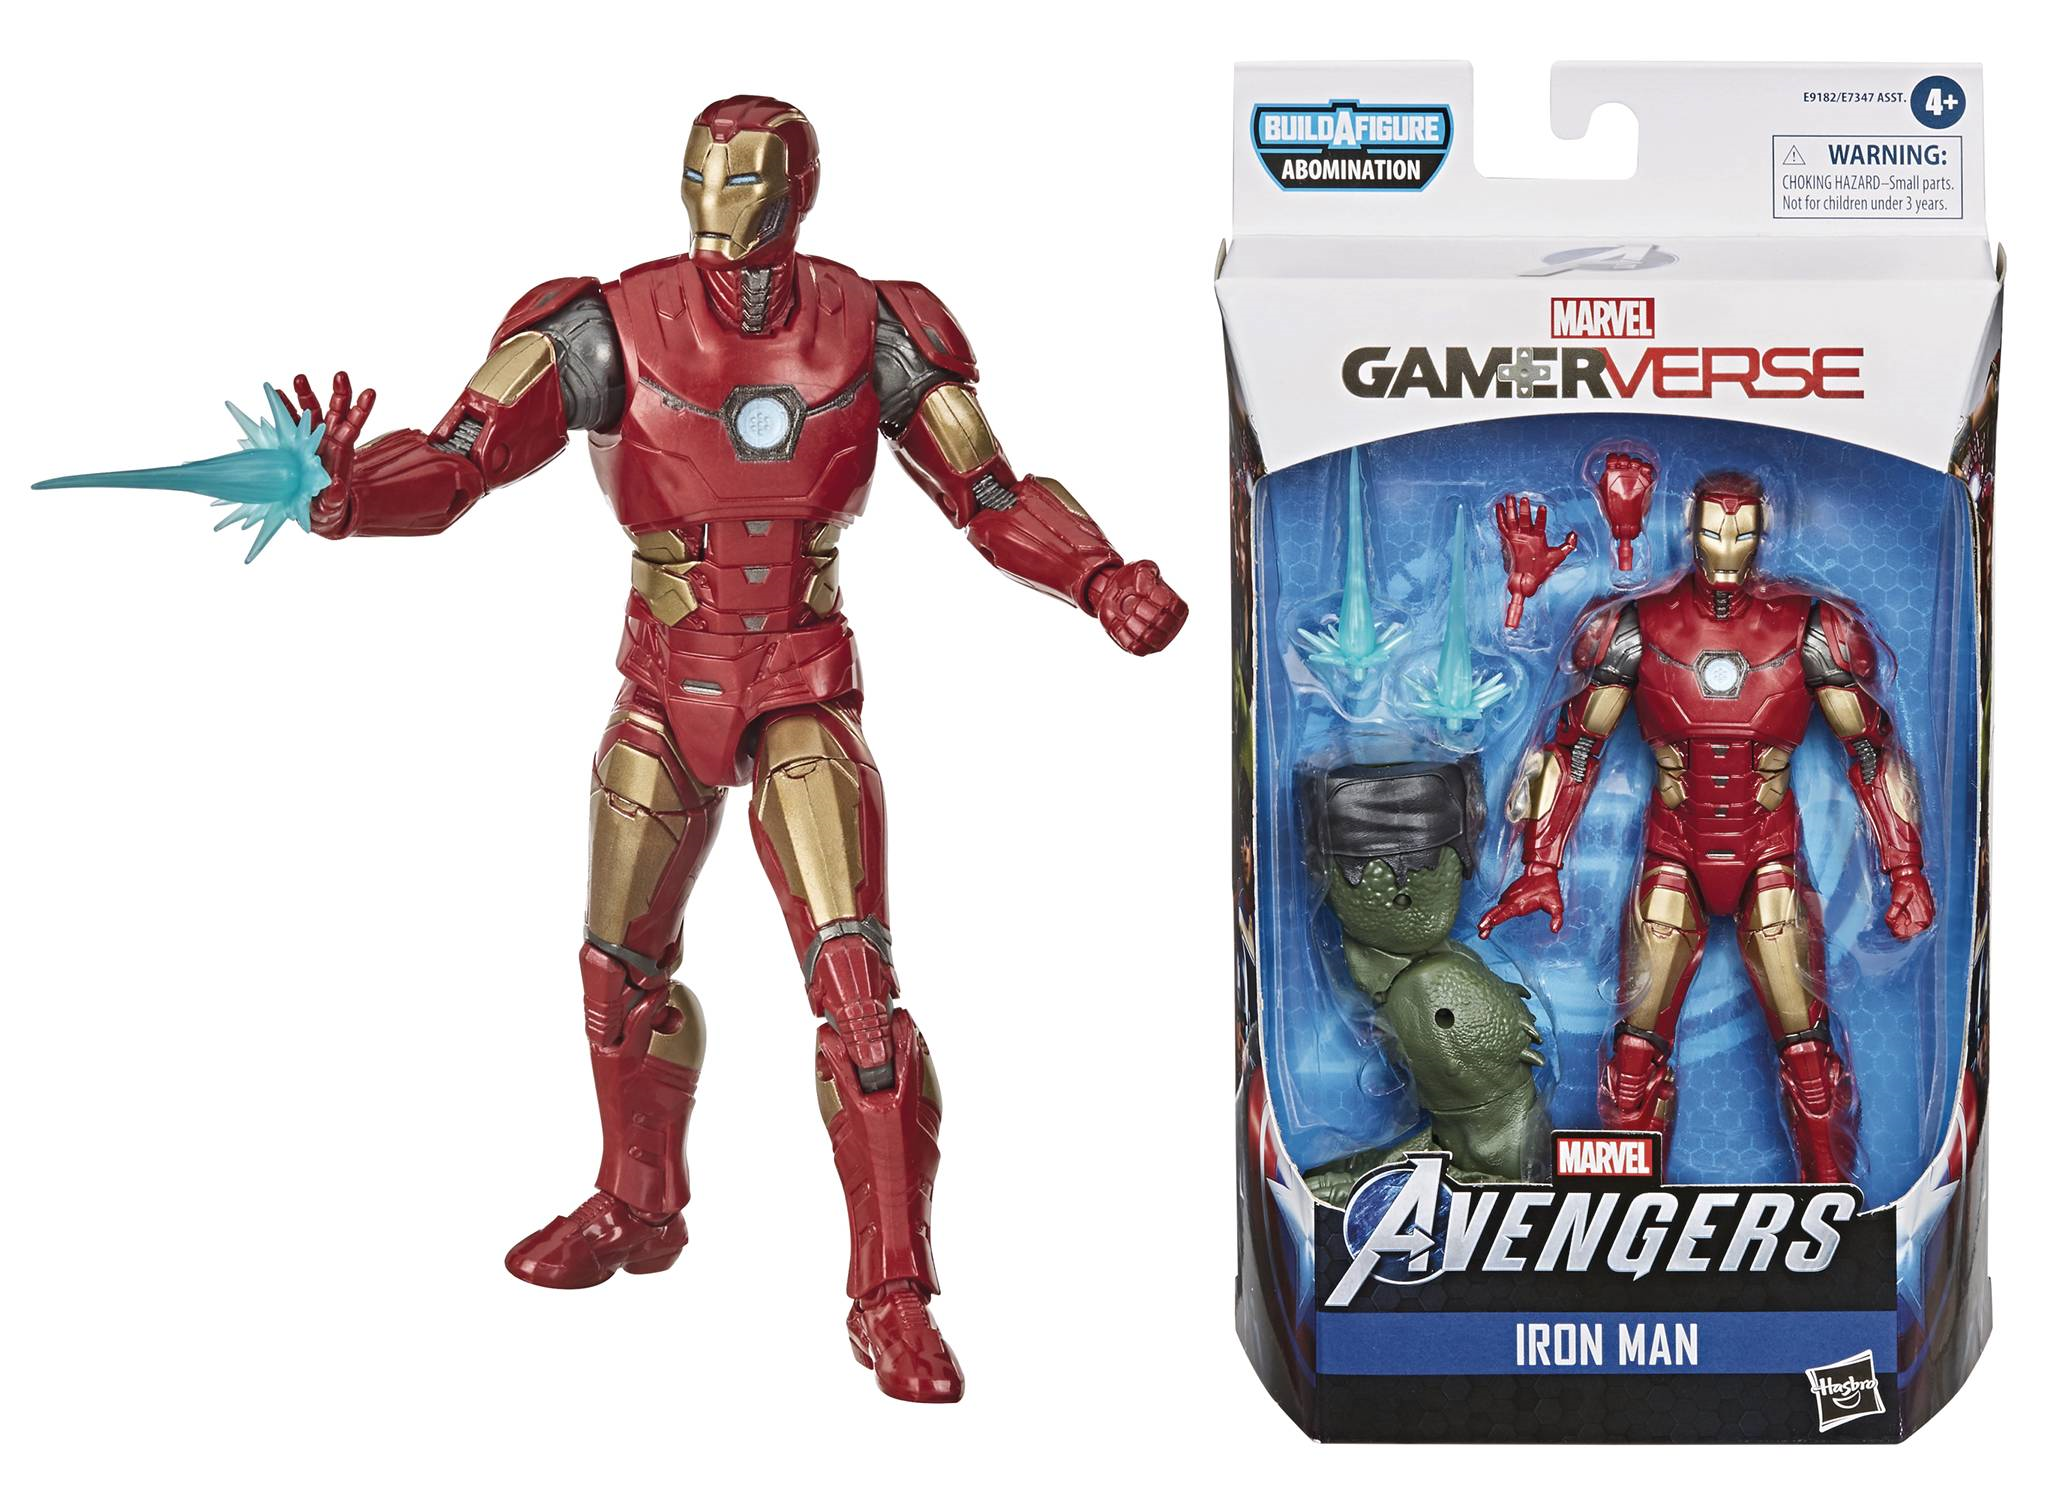 Marvel Legends - Marvels Avengers Gamevese - Iron Man 6in Action Figure